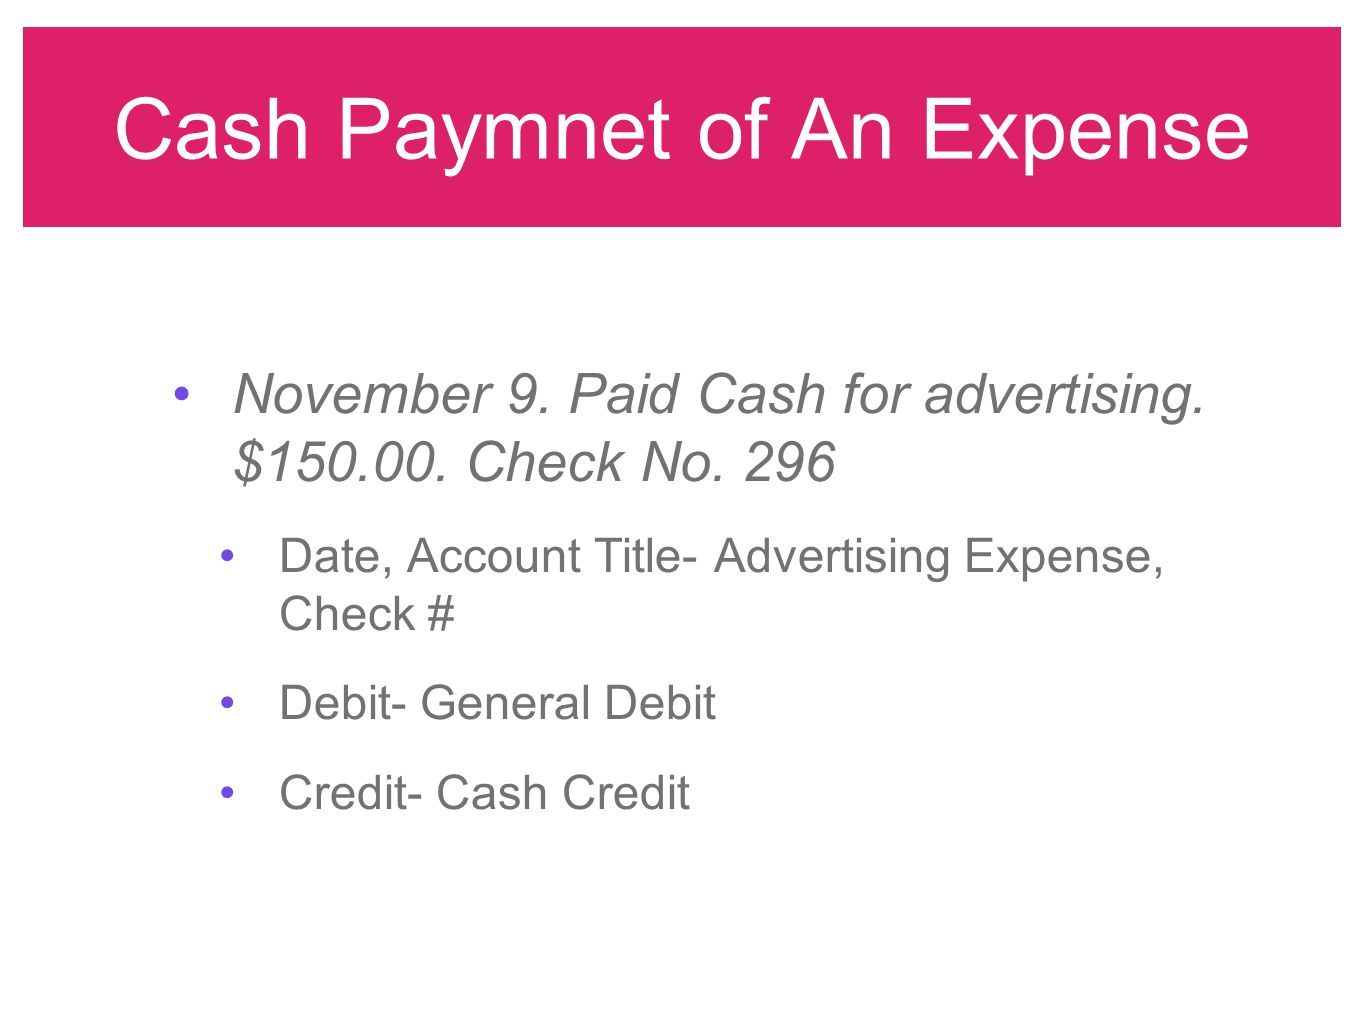 Cash Paymnet of An Expense